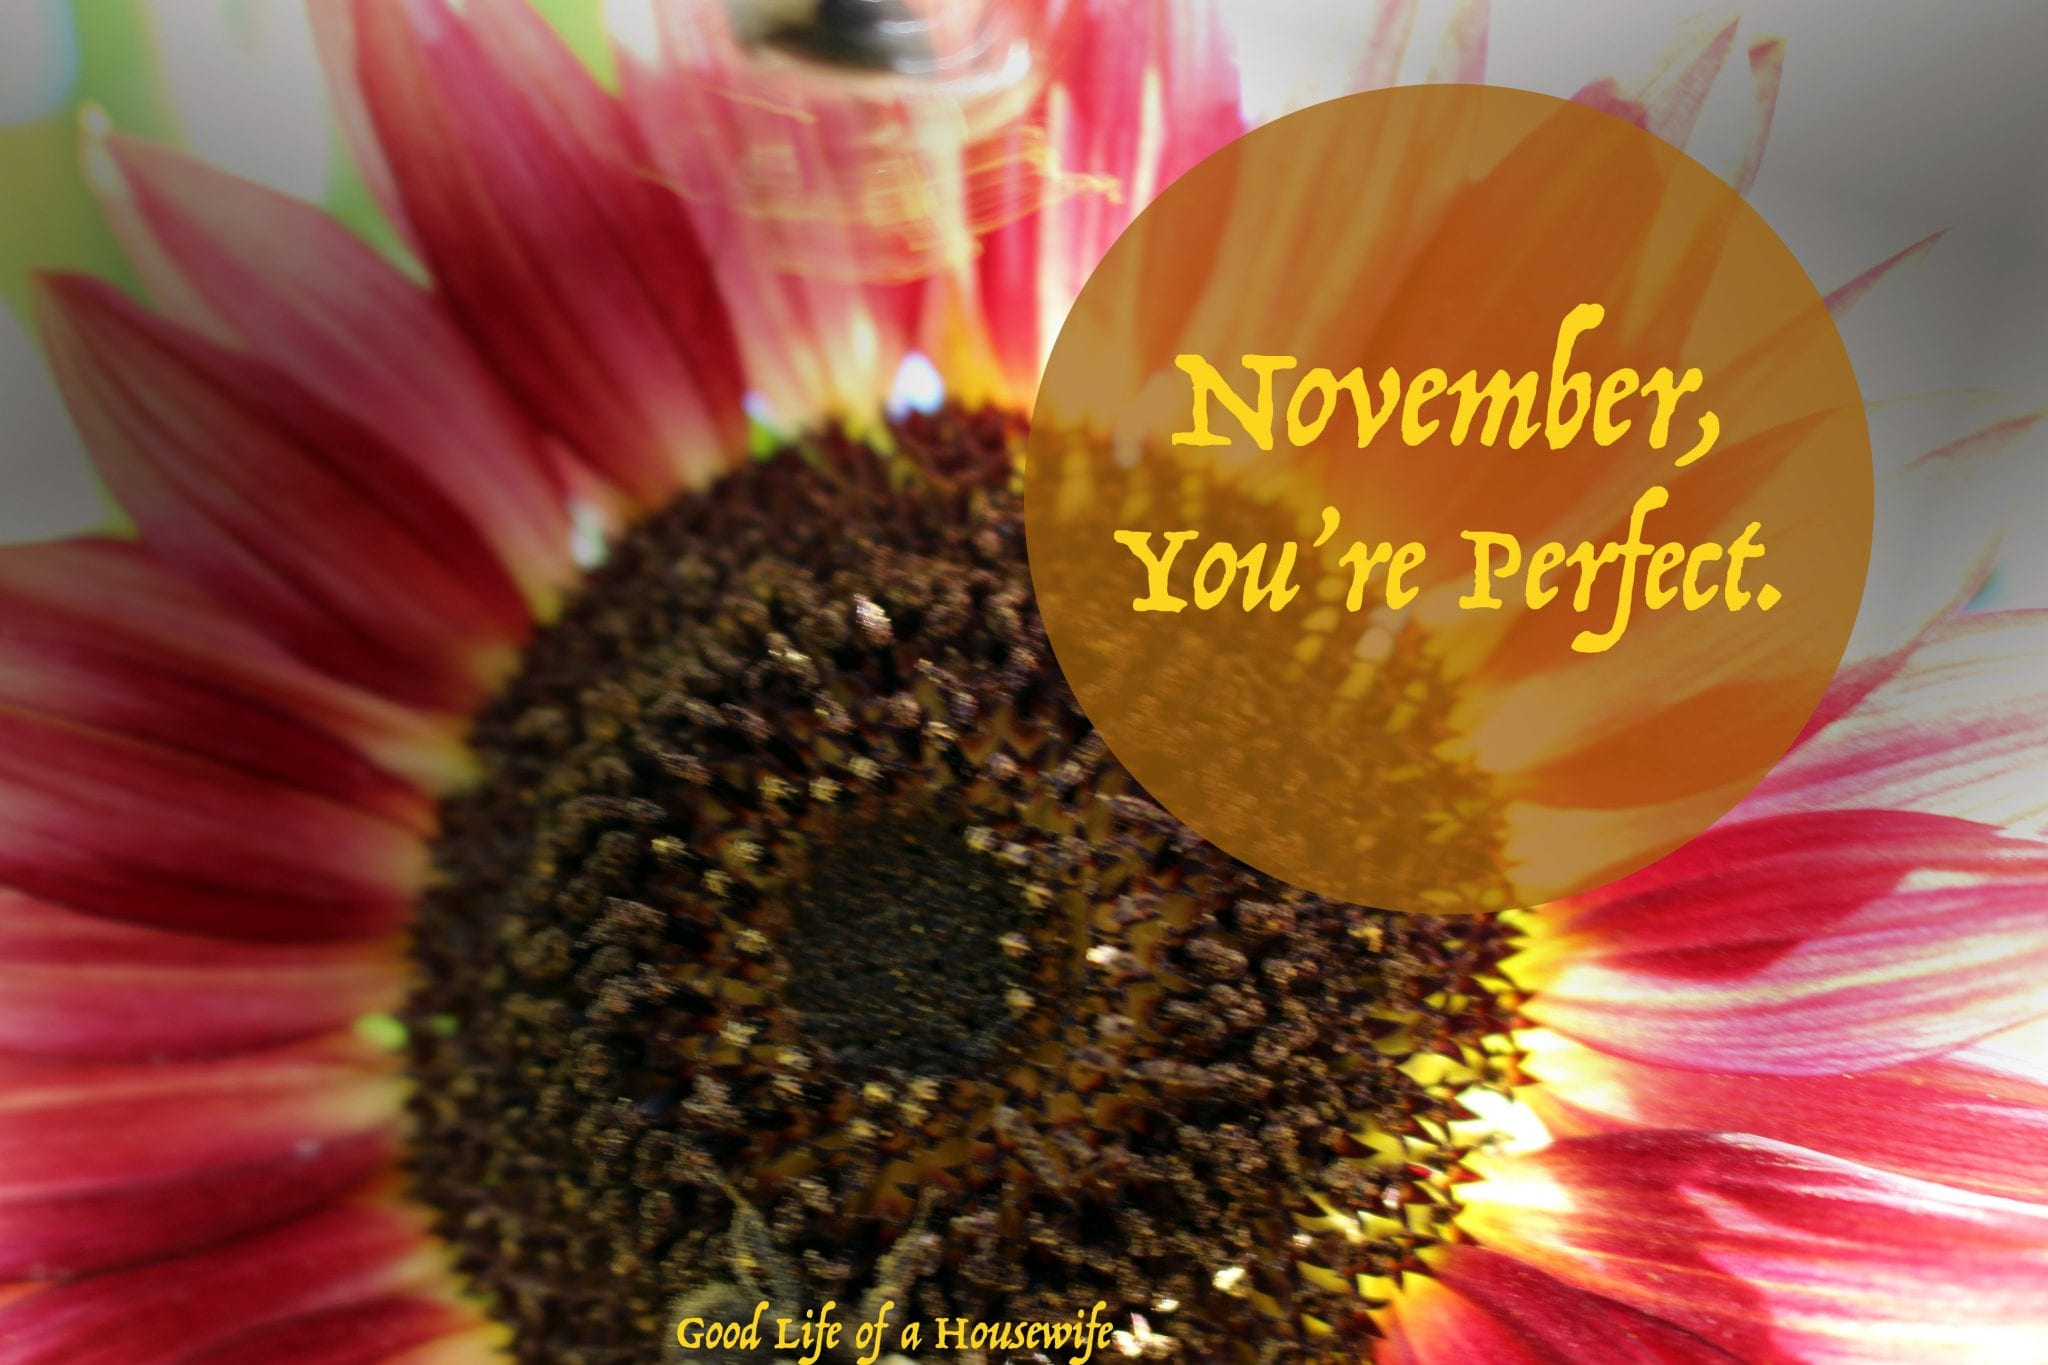 November, You're Perfect.